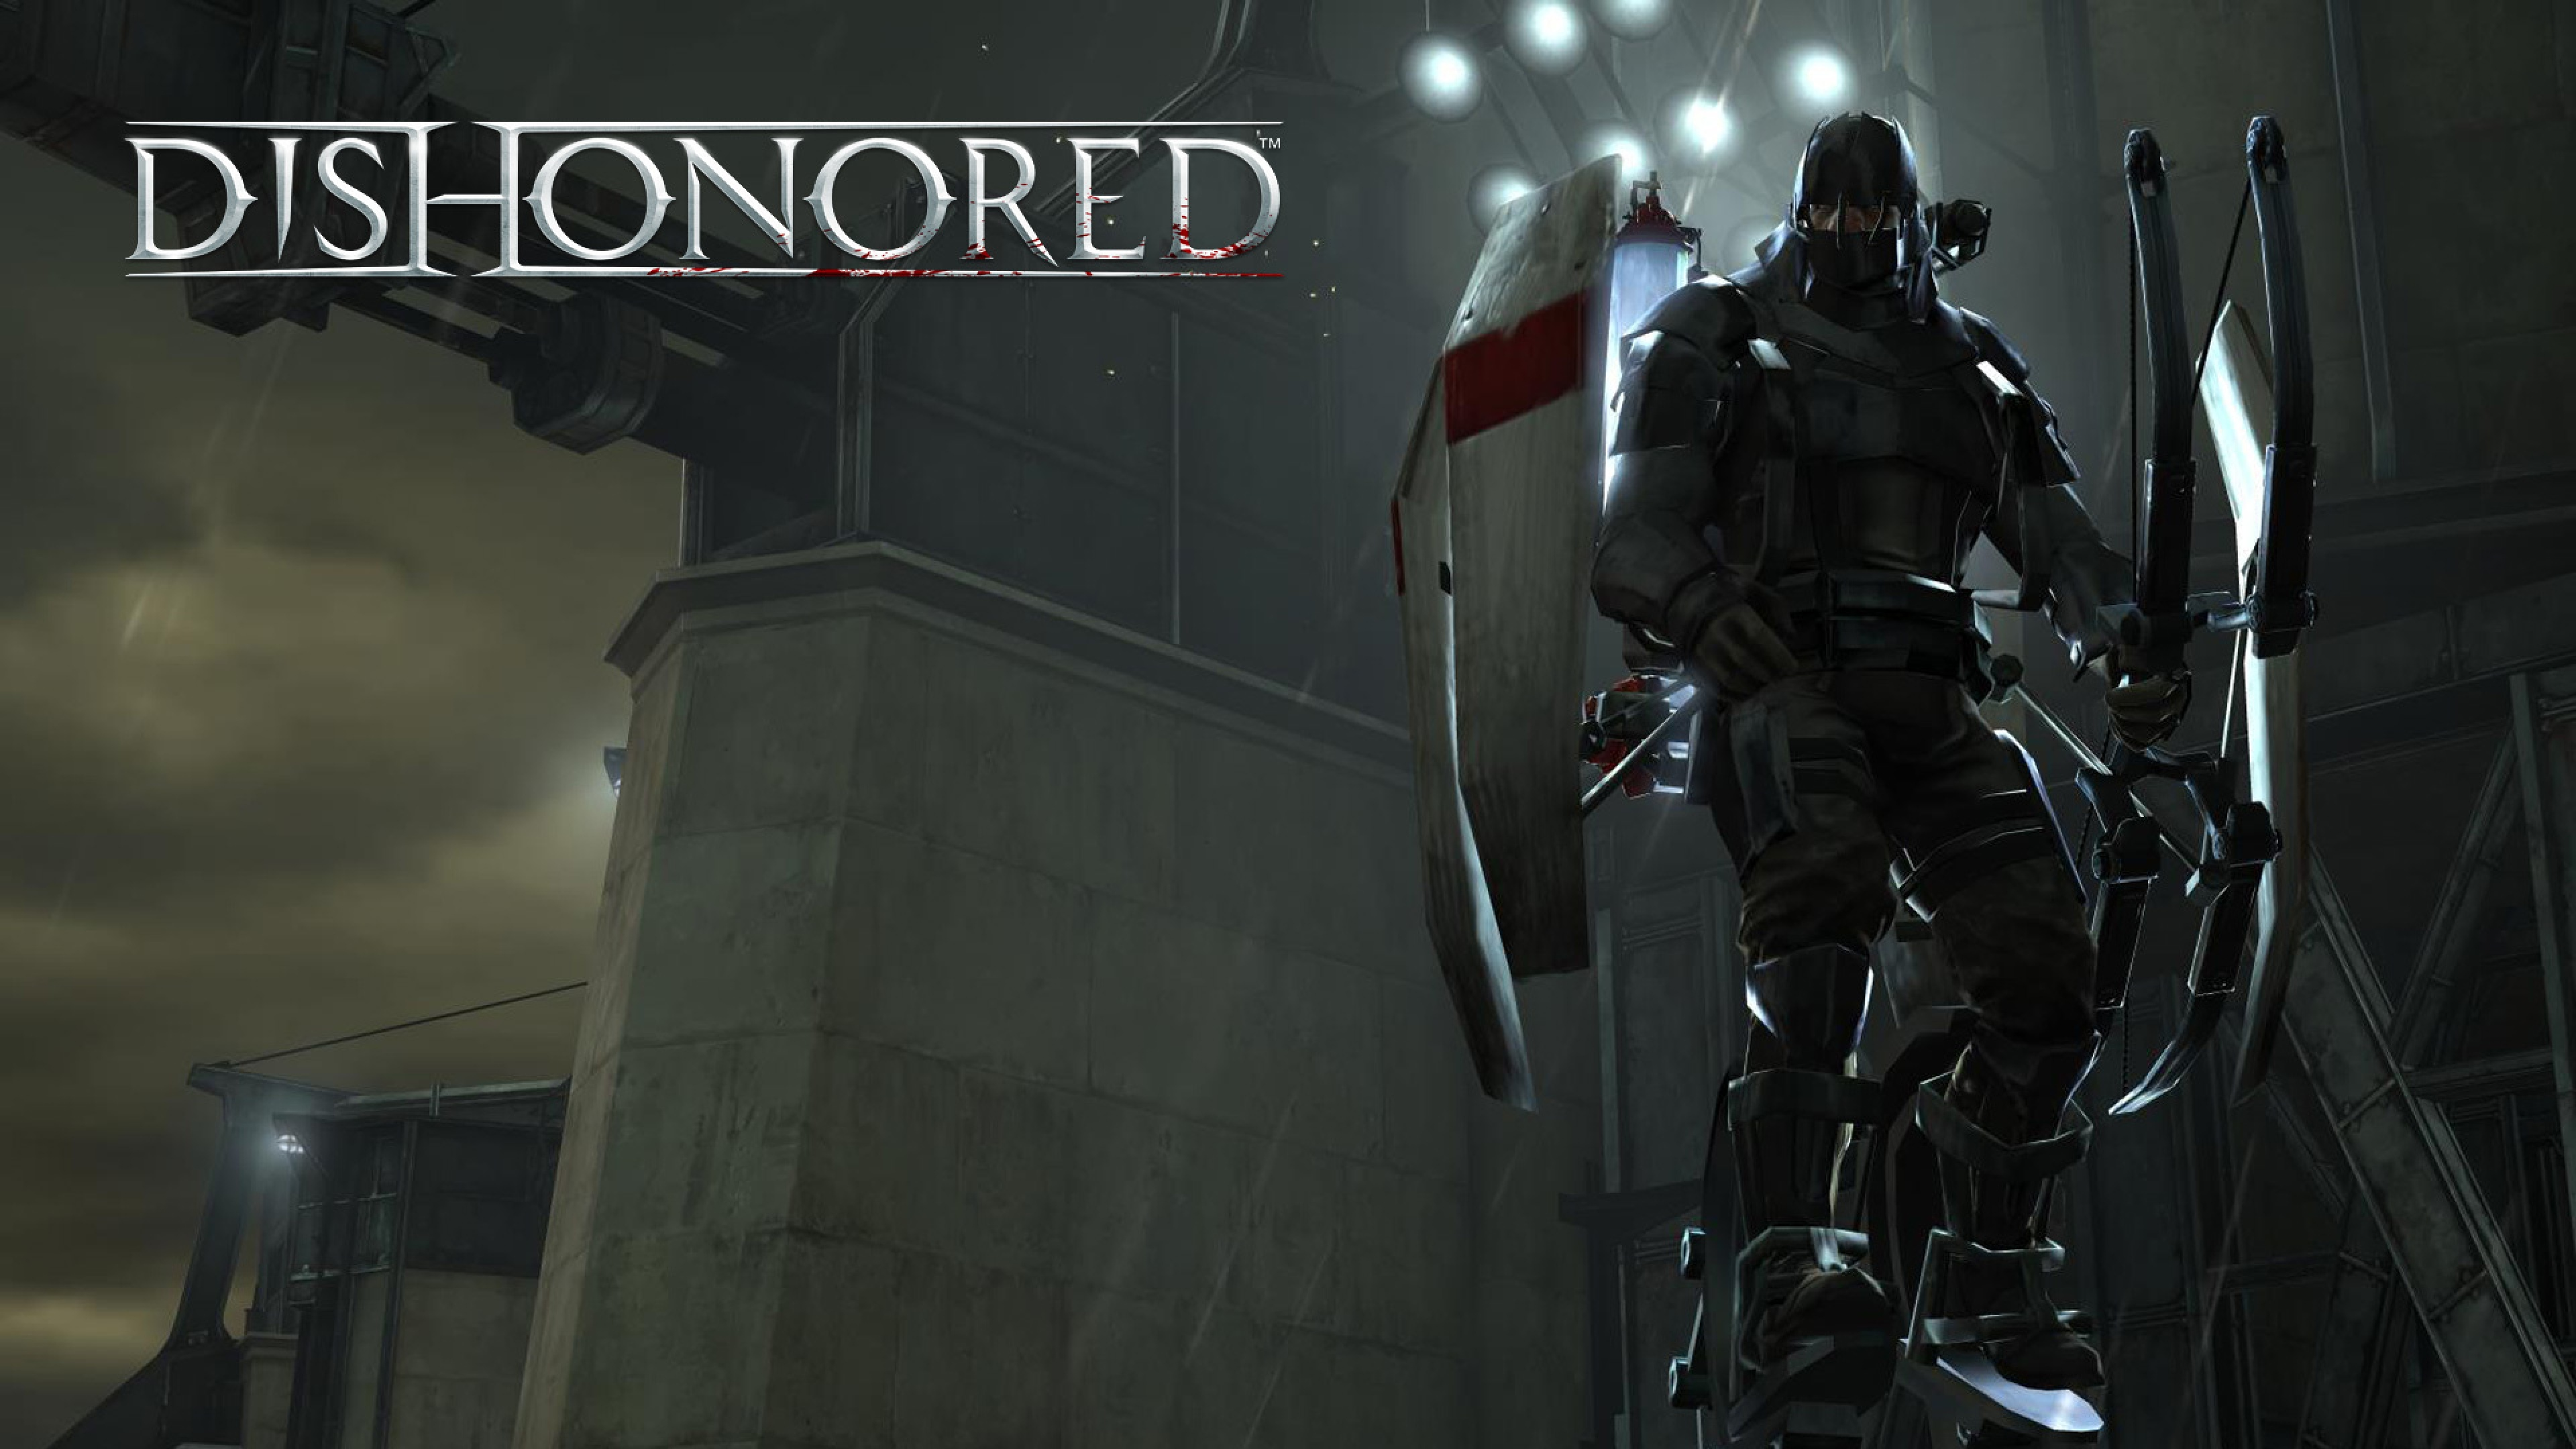 Wallpaper 4k Dishonored 2 Games Dishonored 2 Wallpapers Games